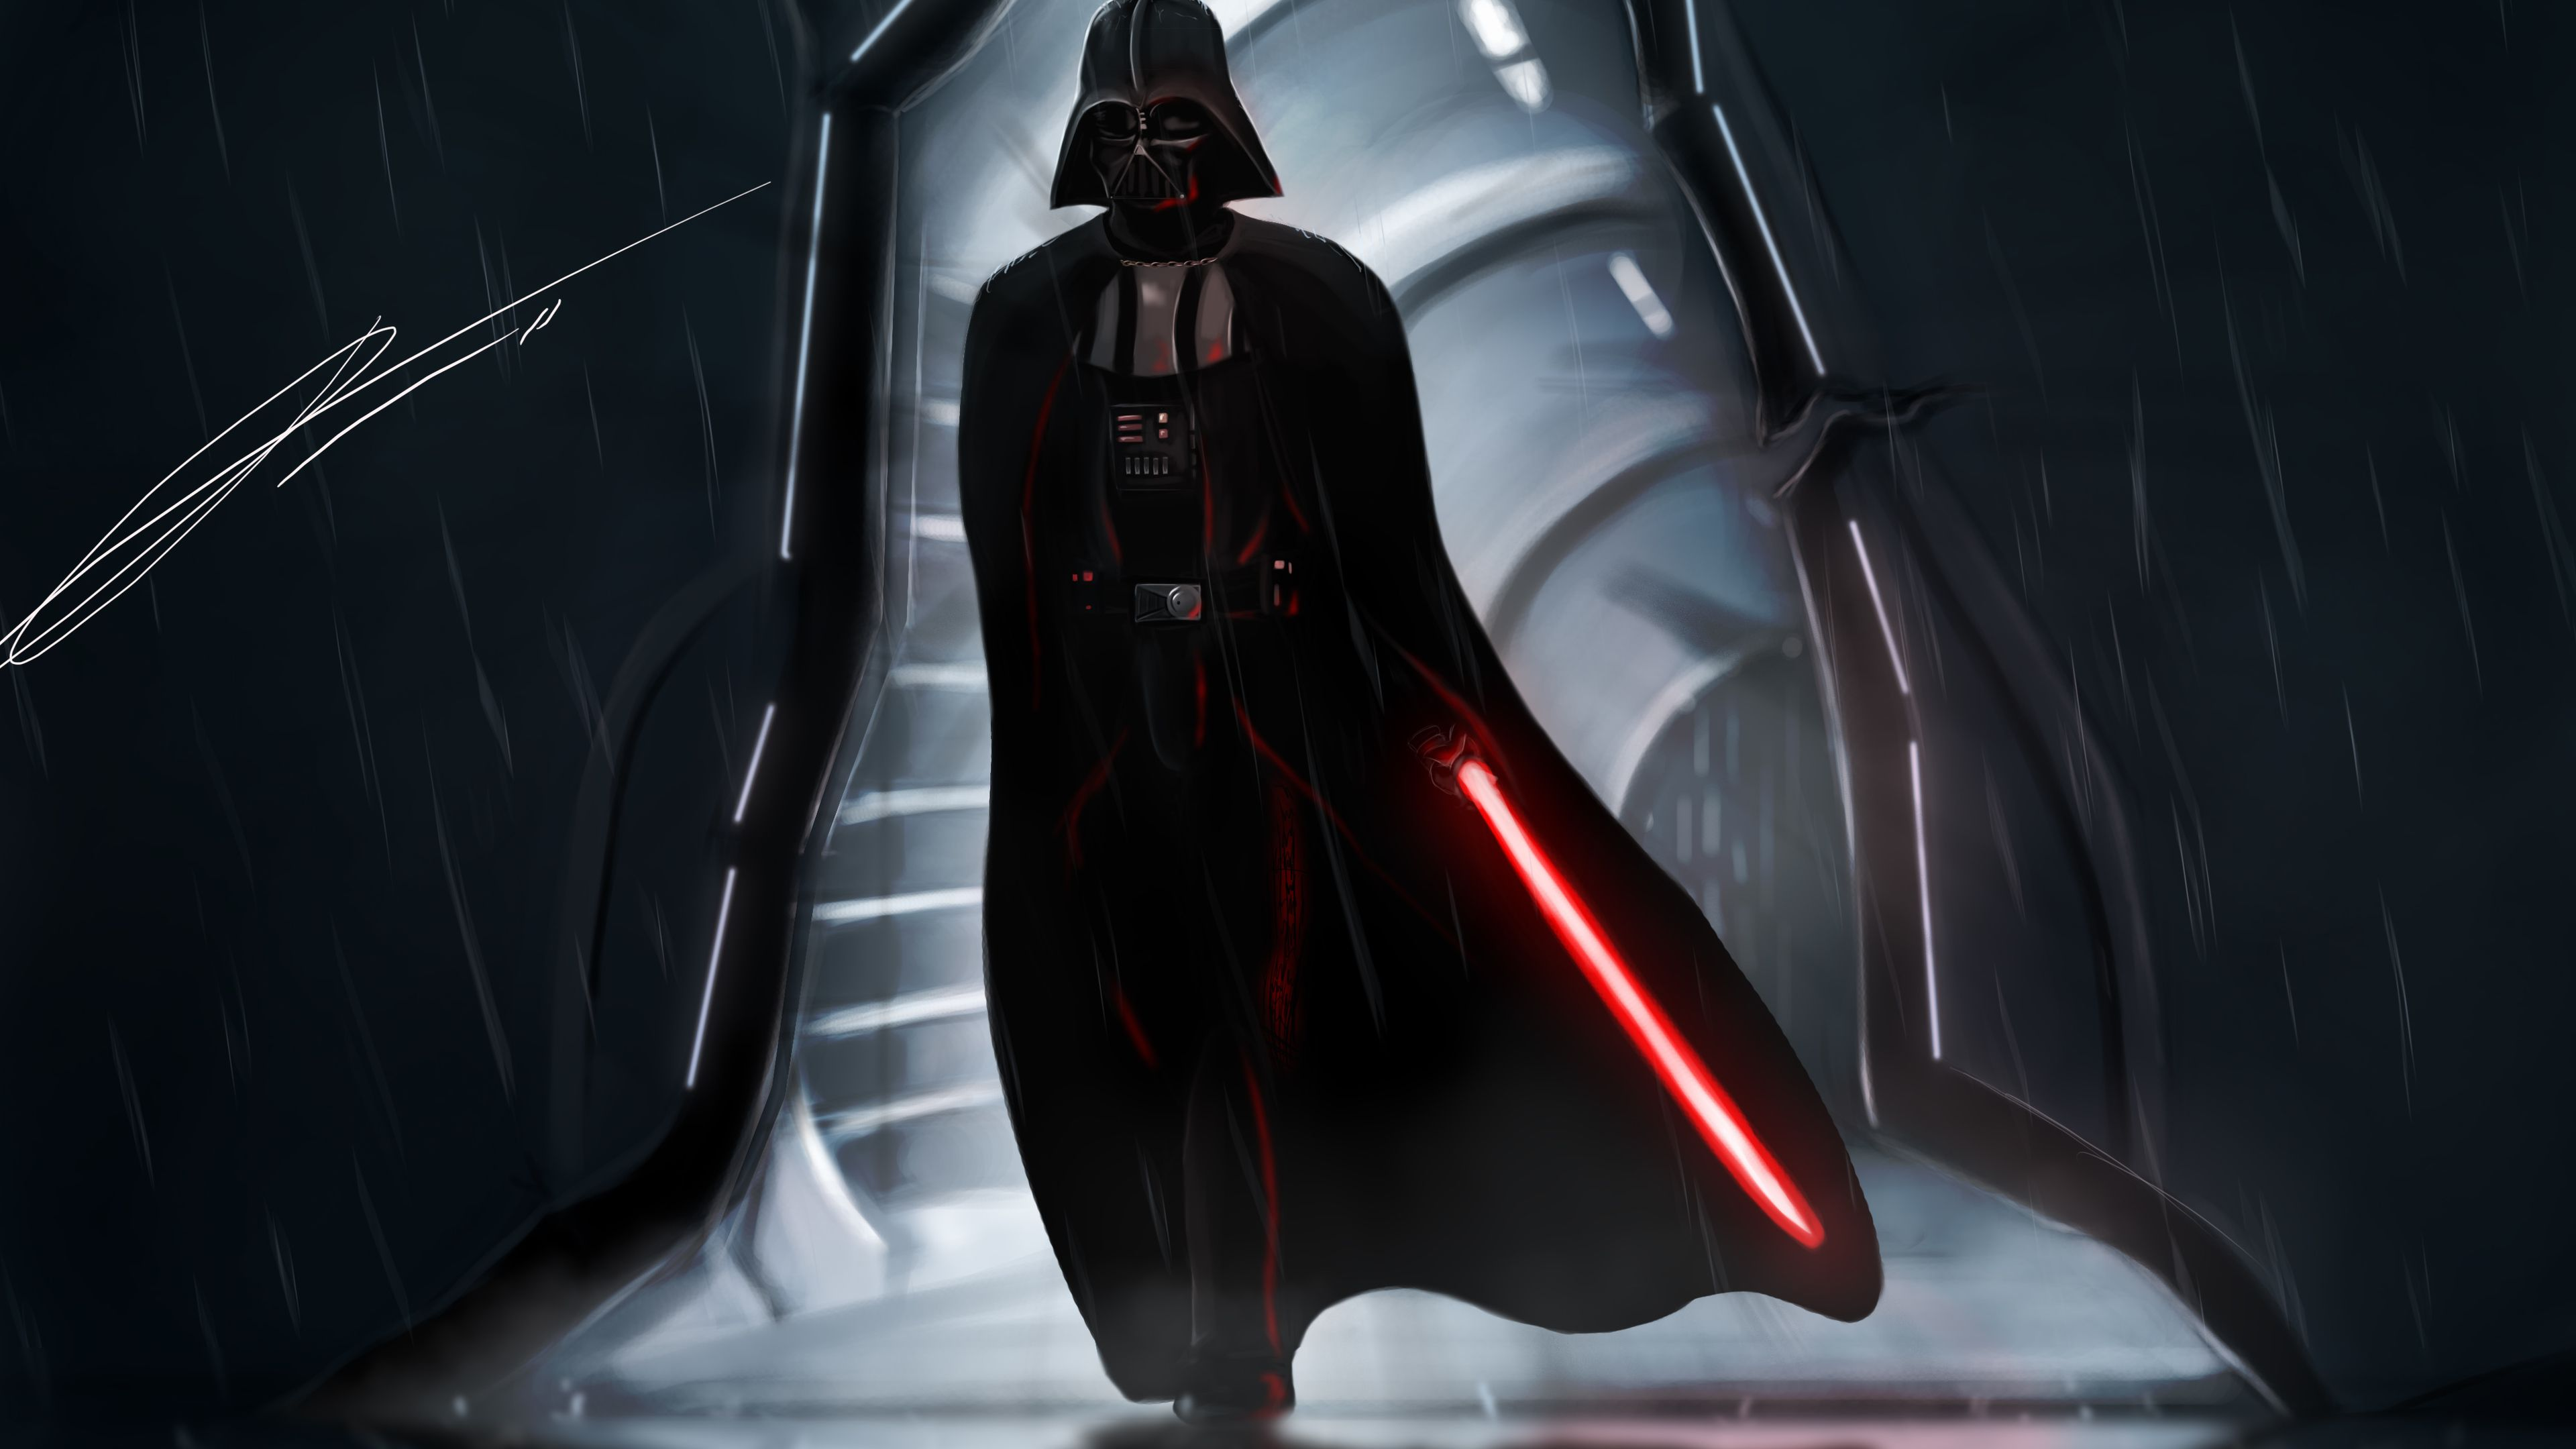 Lord Vader 4k Star Wars Wallpapers Hd Wallpapers Digital Art Wallpapers Deviantart Wallpapers Darth V Star Wars Wallpaper Star Wars Artwork Vader Star Wars